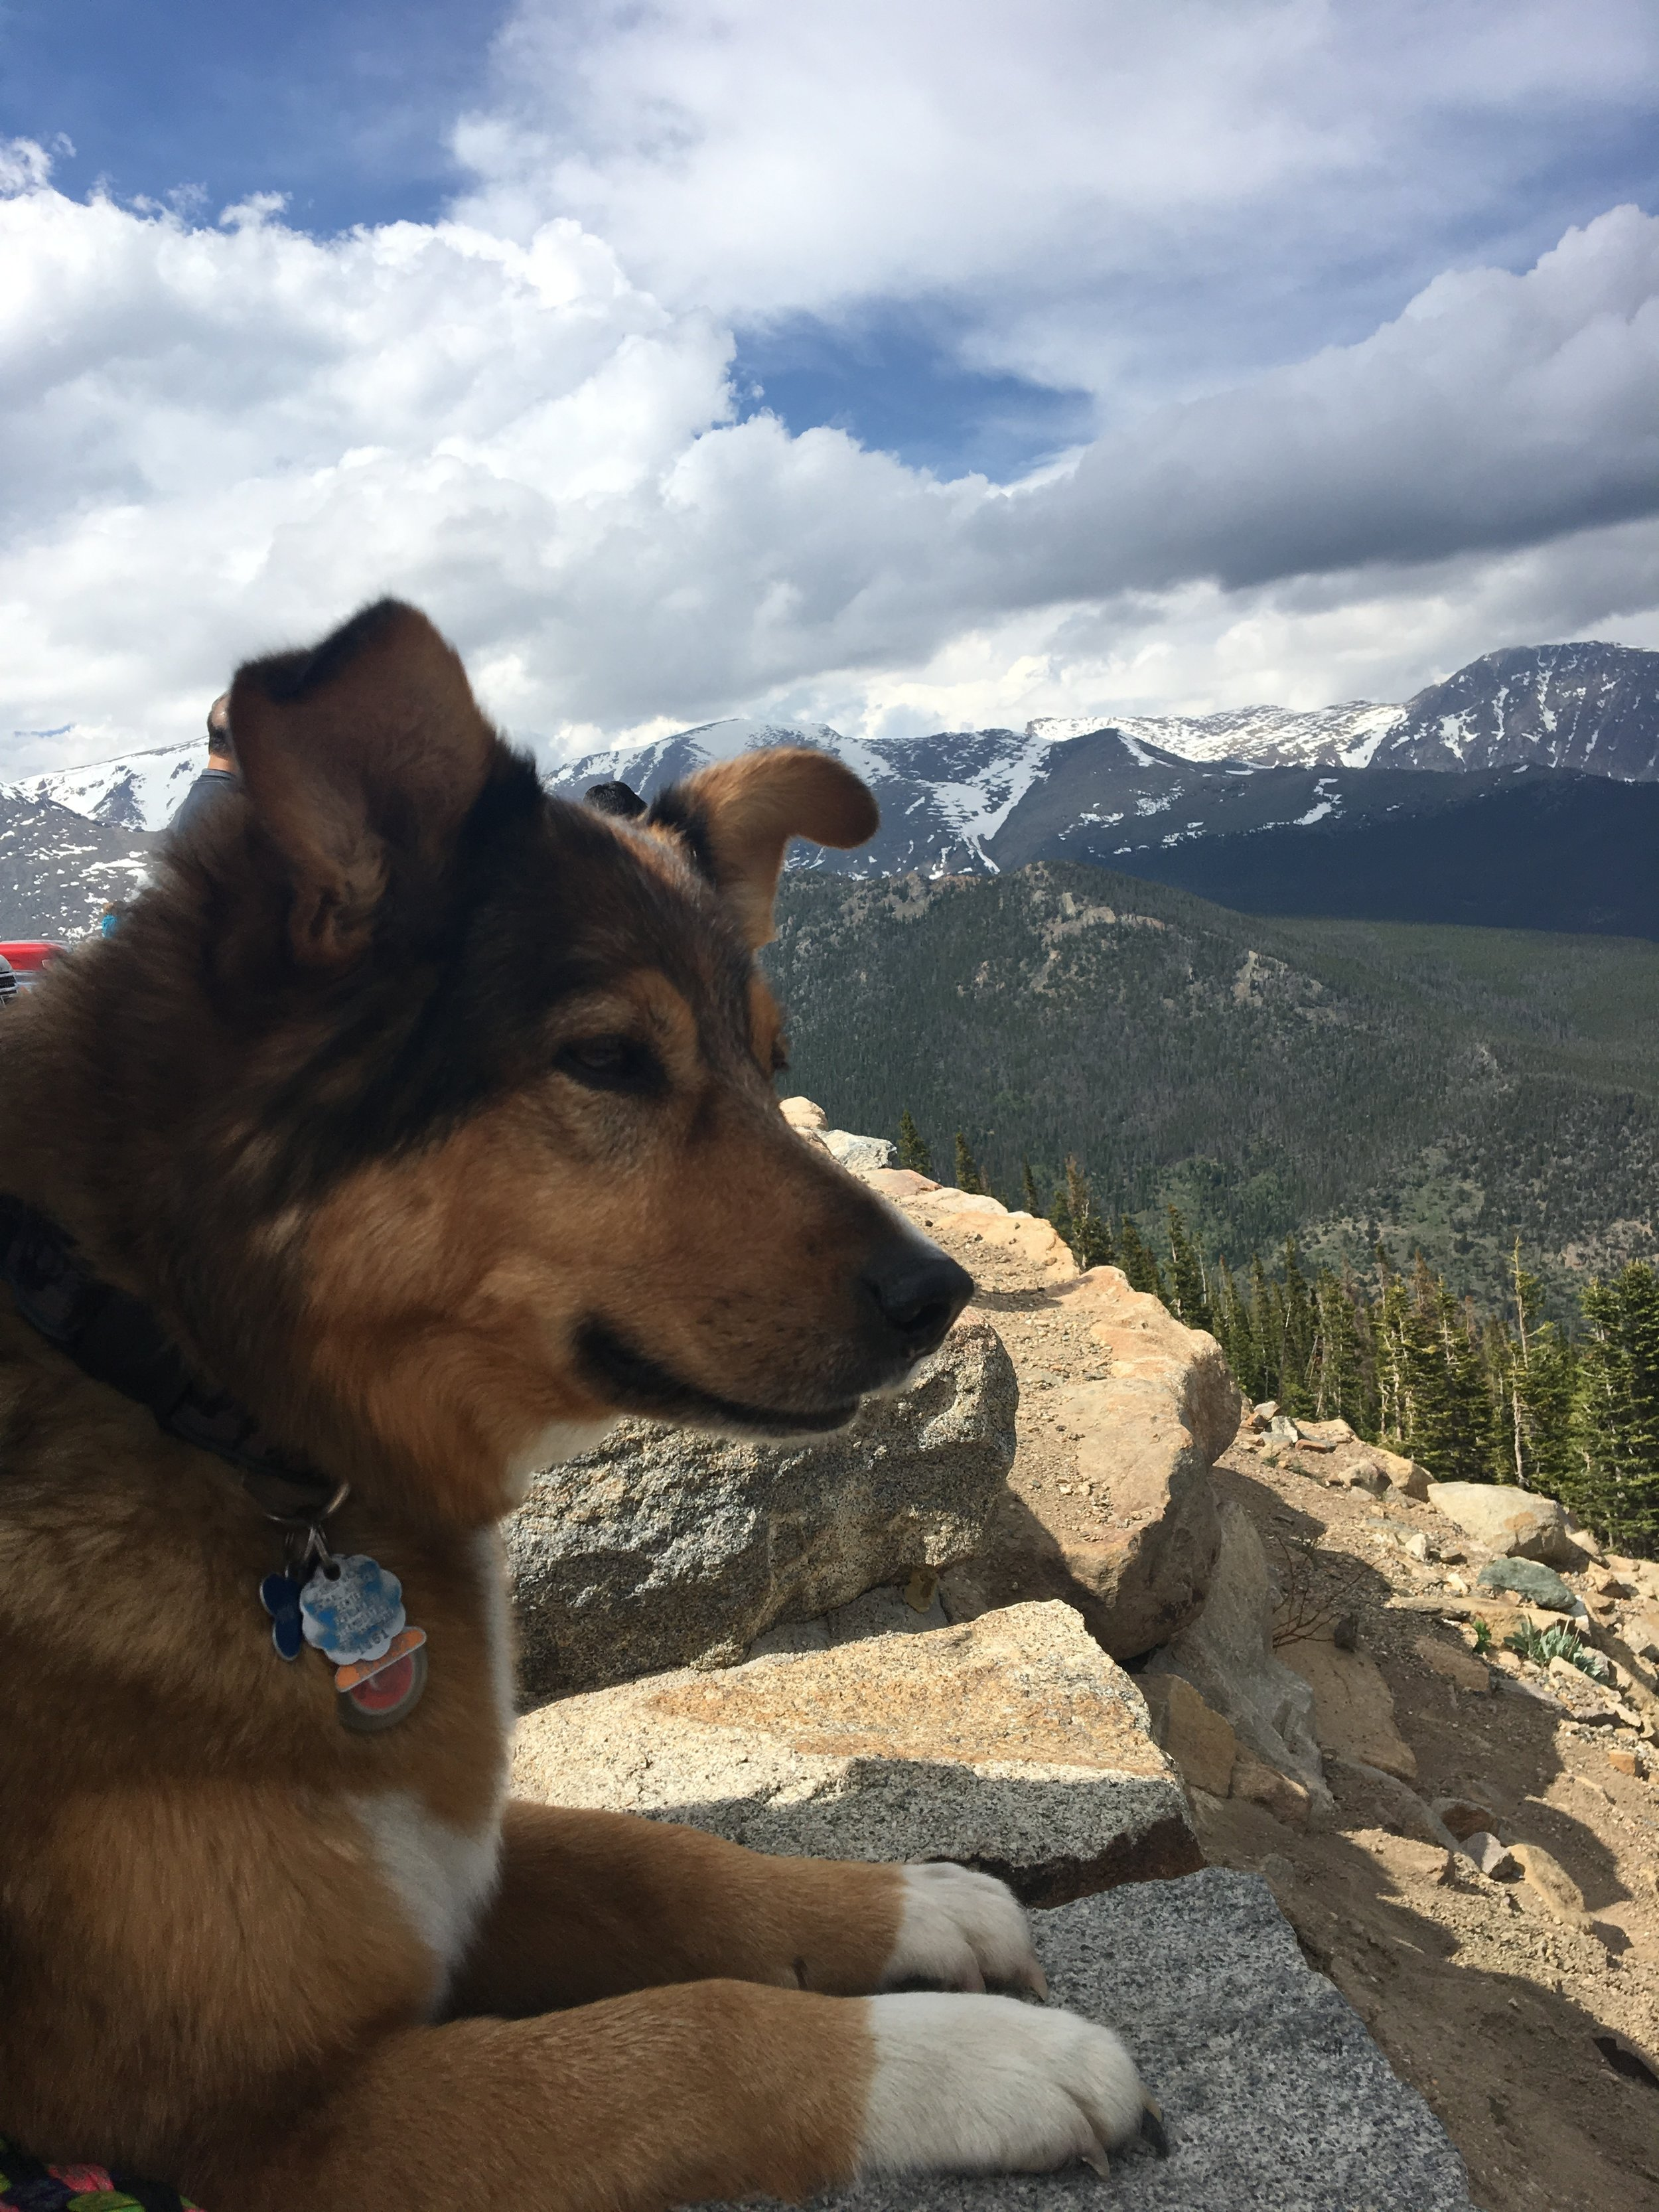 TBT to visiting RMNP last year with Stella. She won't be joining us for this trip (too much wildlife out there!), but she'll be happy that she's staying with Uncle Jeremy and her cousin Waylon (dog)  ;)